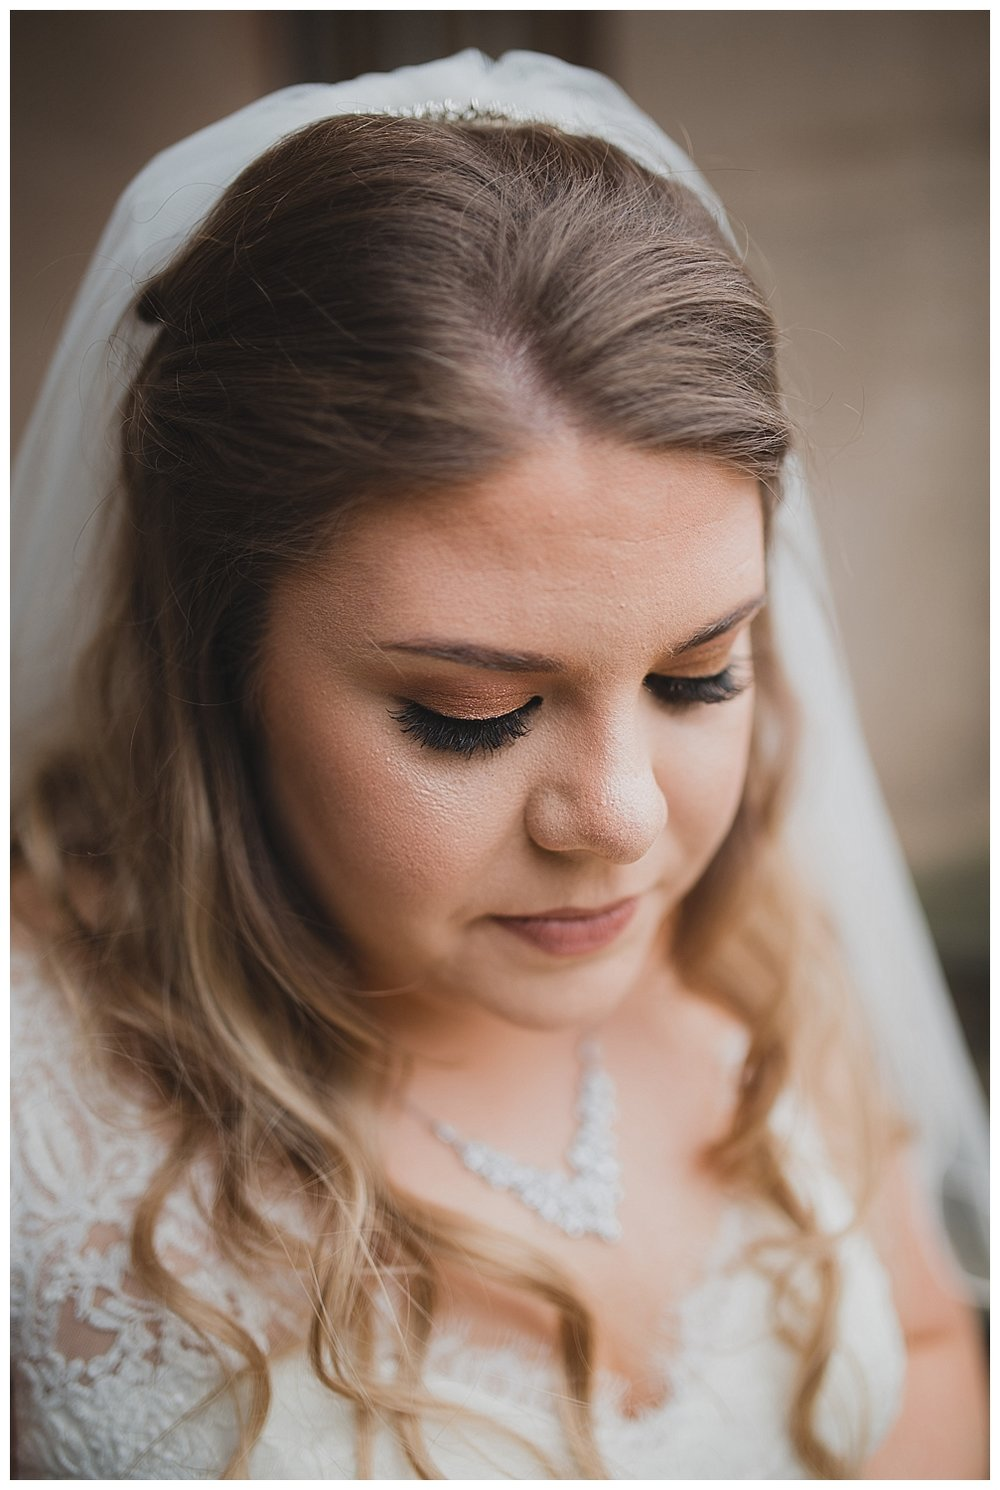 Beautiful make-up for this Staffordshire bride.